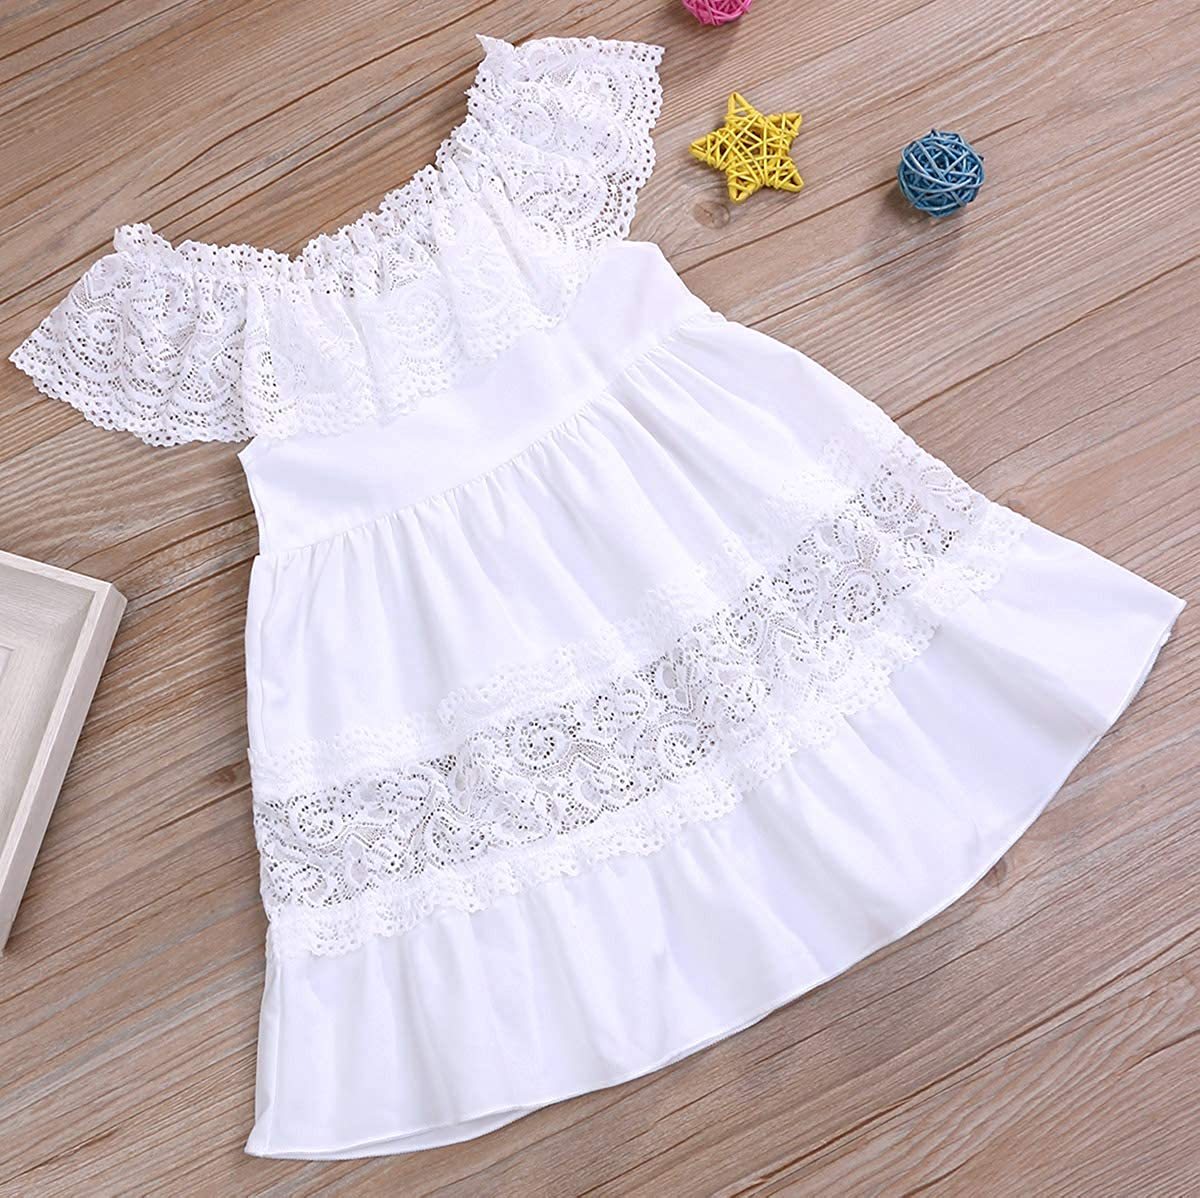 YOUNGER TREE Kids Baby Girls Hollow Ruffle Dress Off Shoulder Lace Dress Party Princess White Dress